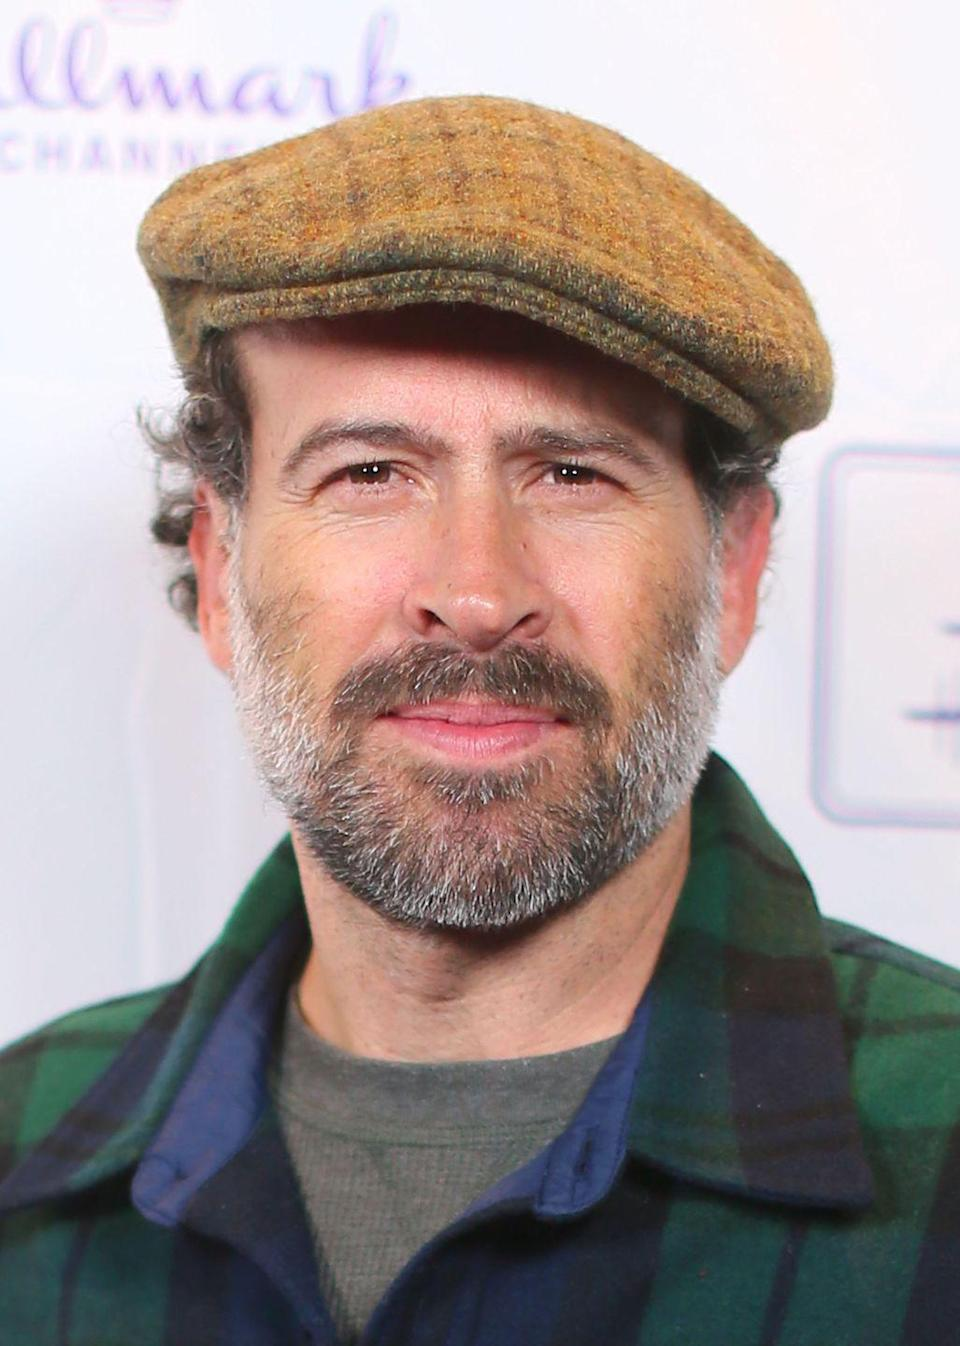 "<p>Actor Jason Lee and former partner Beth Riesgraf have said they reportedly chose the name ""Pilot"" for their son after Jason heard a song from <em>The Sophtware Slump</em> album by the band Grandaddy. In 2005, the <em>My Name Is Earl</em> star <a href=""http://content.time.com/time/specials/packages/article/0,28804,2070329_2070340_2070333,00.html"" rel=""nofollow noopener"" target=""_blank"" data-ylk=""slk:told"" class=""link rapid-noclick-resp"">told </a><em><a href=""http://content.time.com/time/specials/packages/article/0,28804,2070329_2070340_2070333,00.html"" rel=""nofollow noopener"" target=""_blank"" data-ylk=""slk:Entertainment Weekly"" class=""link rapid-noclick-resp"">Entertainment Weekly</a>: ""</em>The opening track, 'He's Simple, He's Dumb, He's the Pilot,' absolutely blew my mind when I first heard it."" </p>"